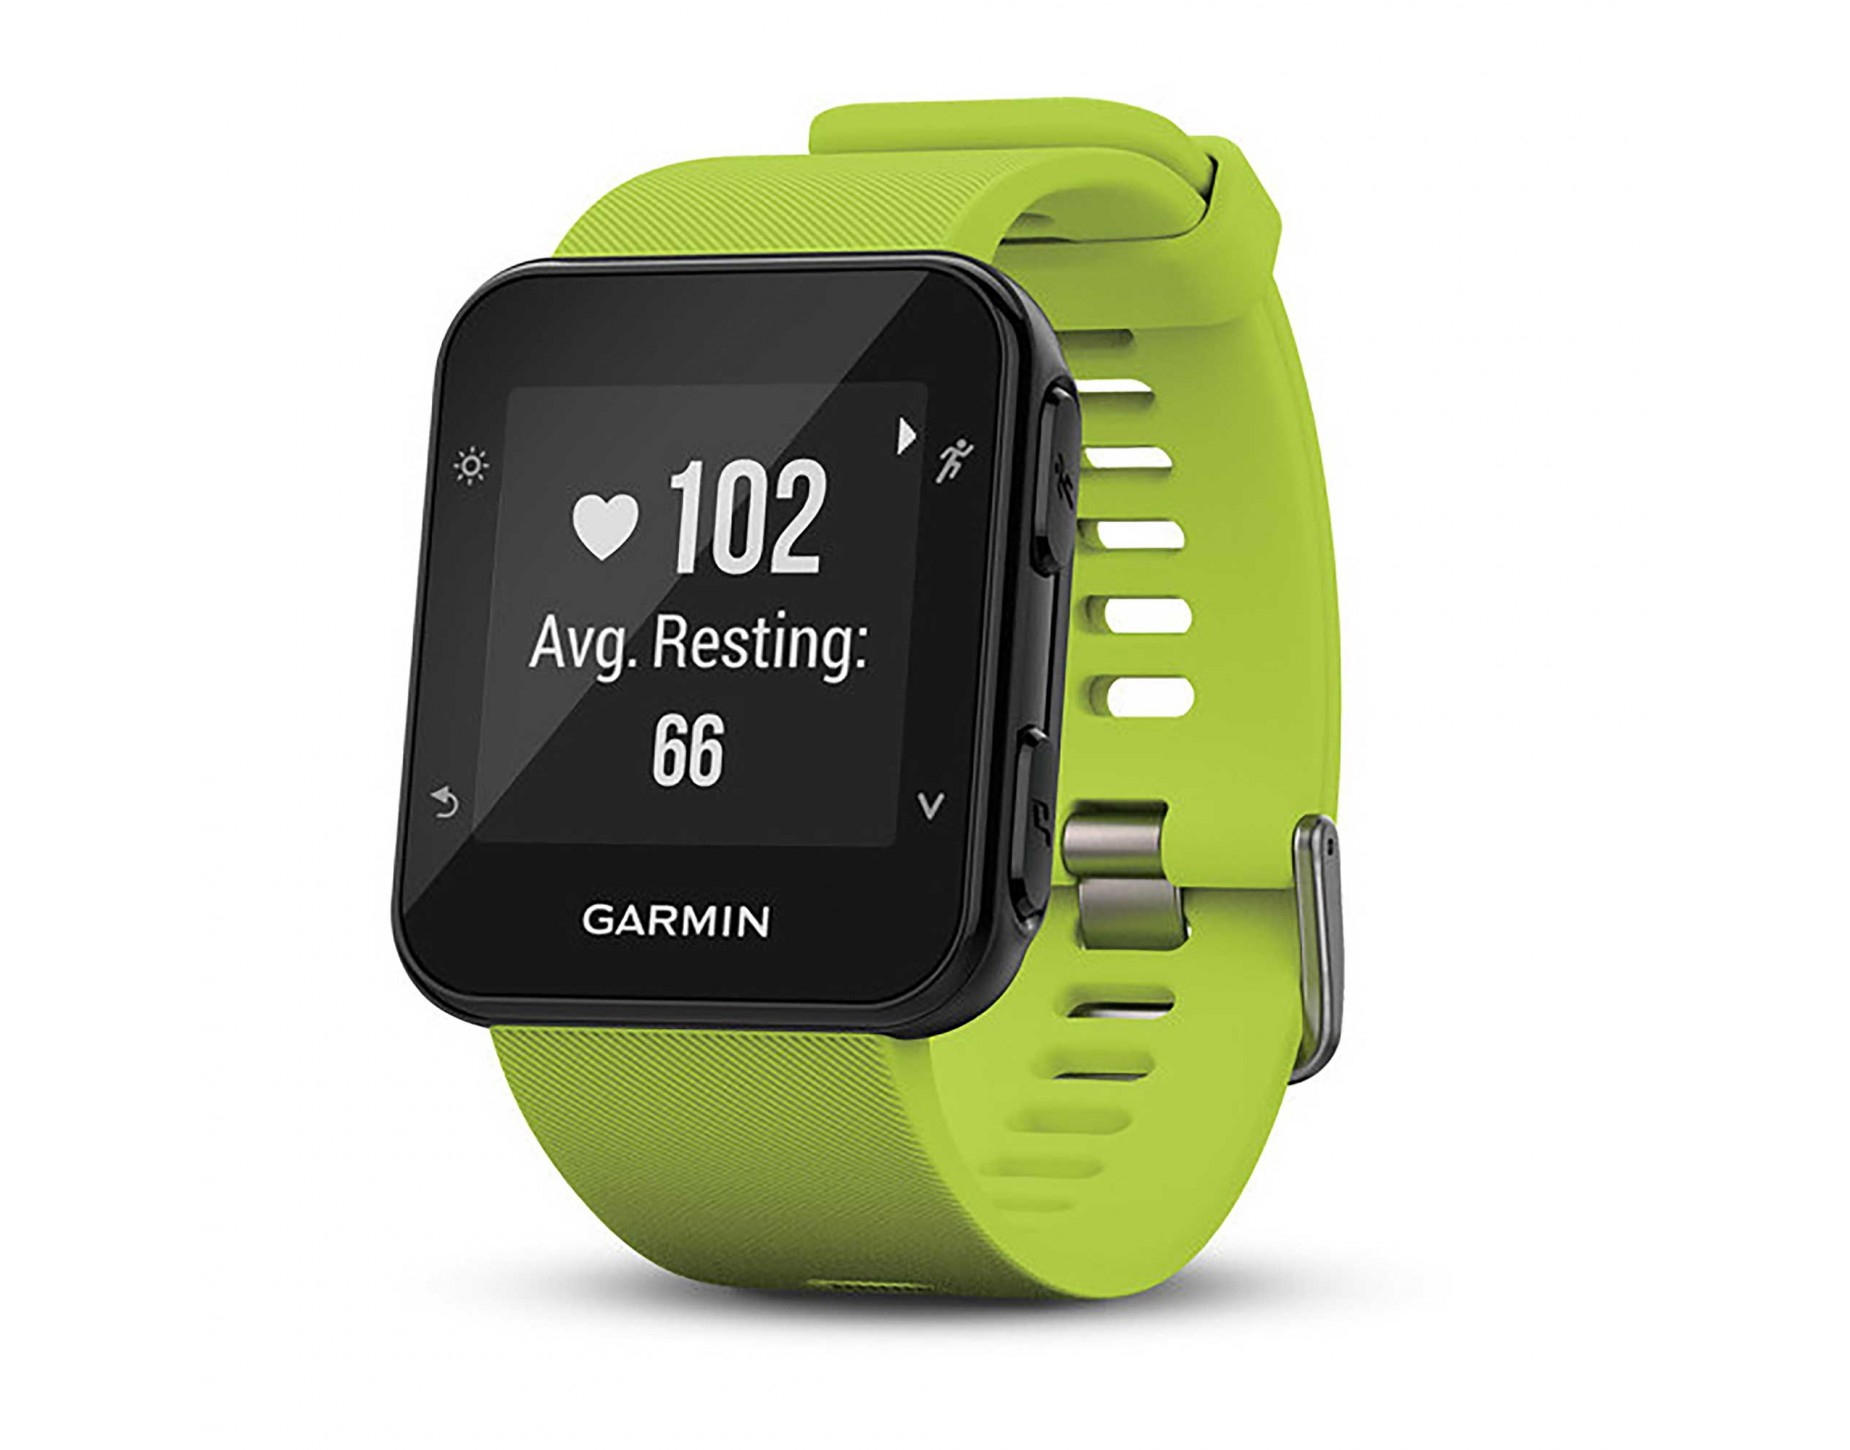 garmin forerunner 35 gps running watch everything you need rose bikes. Black Bedroom Furniture Sets. Home Design Ideas